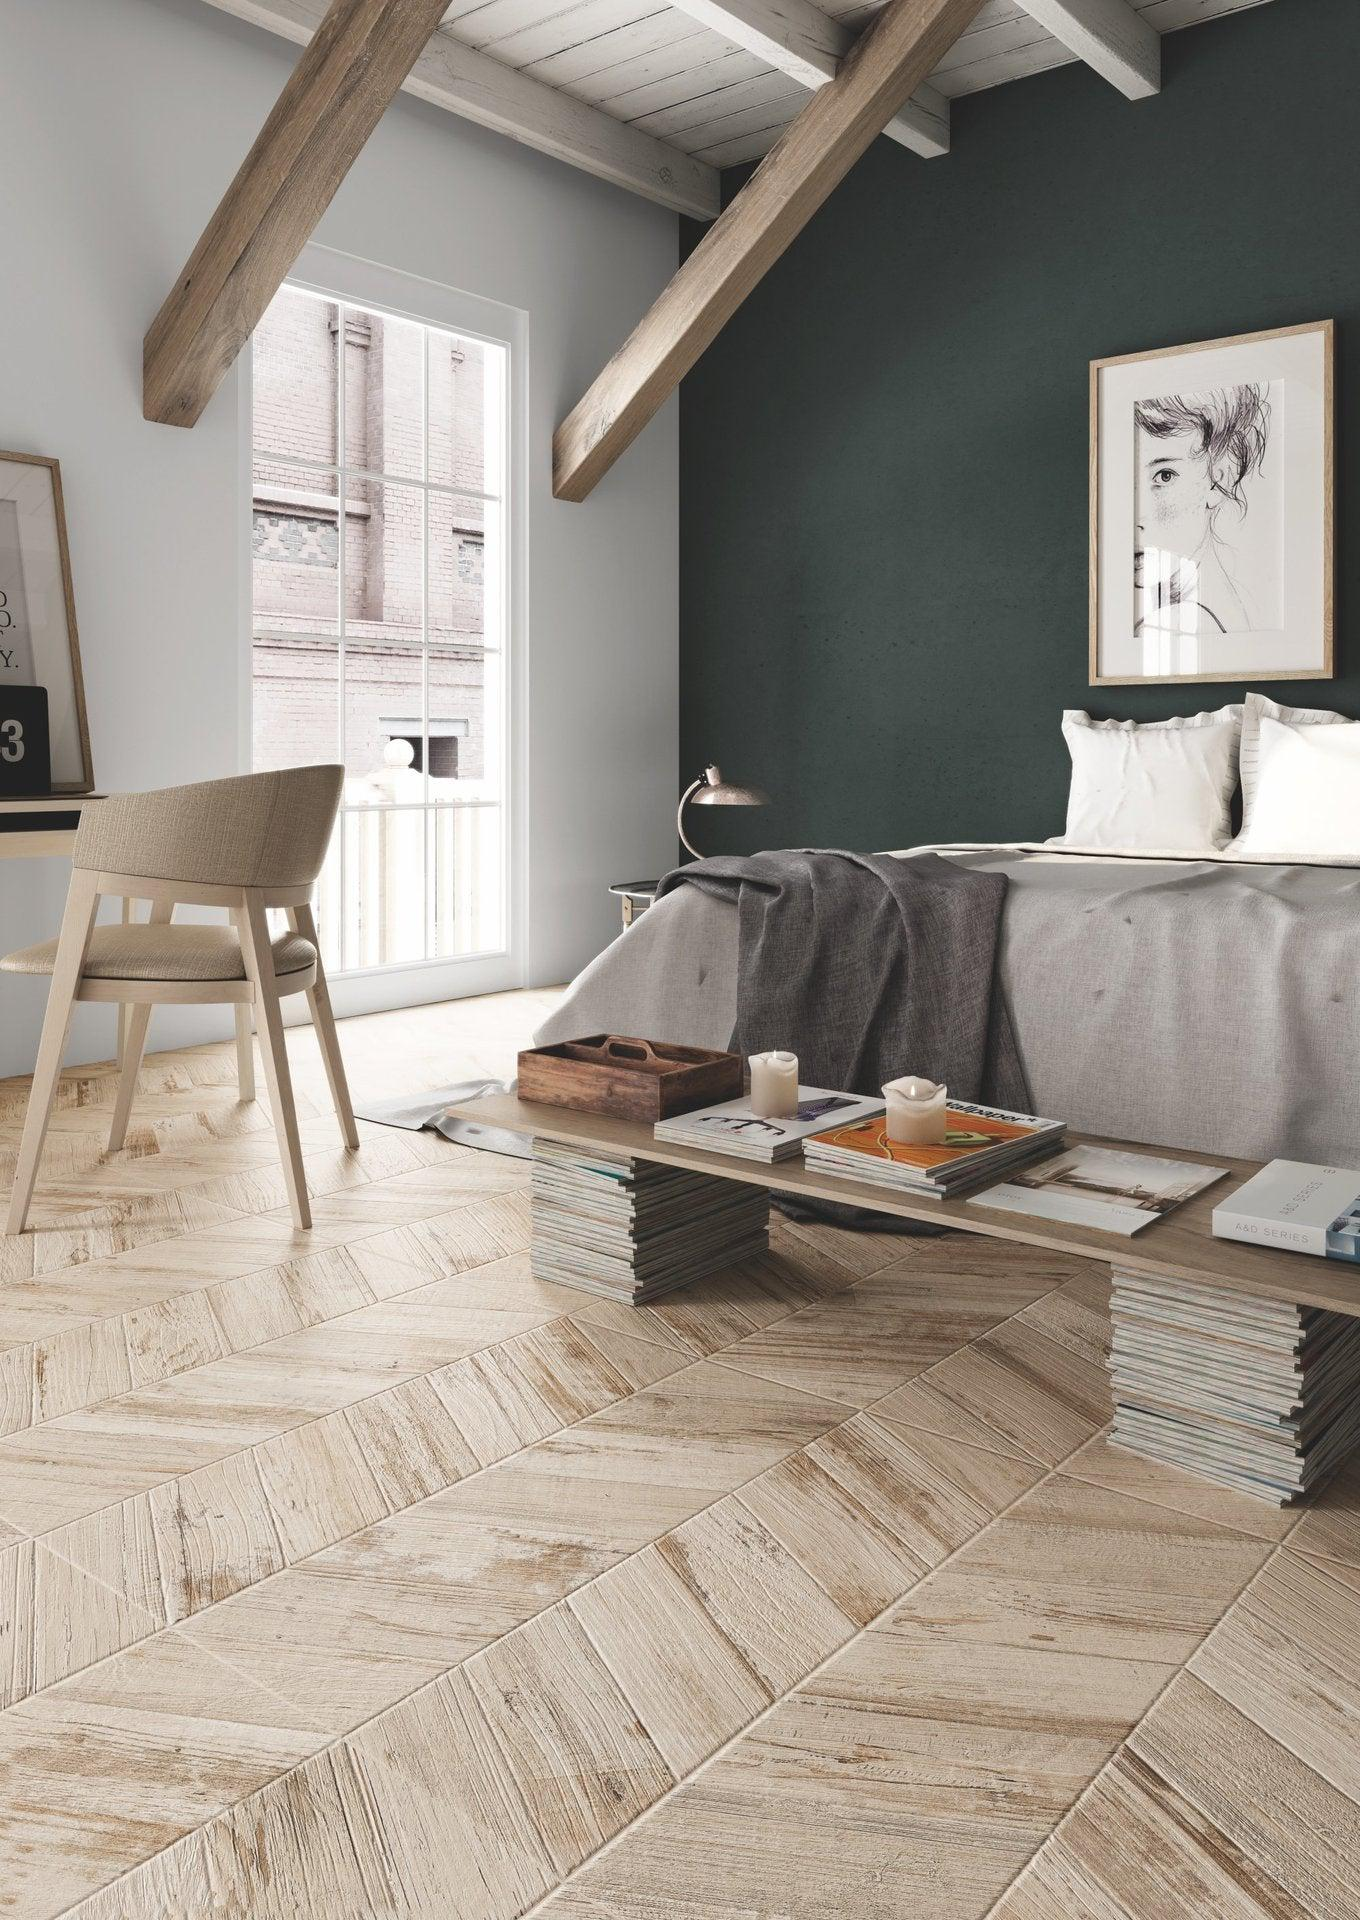 Chevron Hardwood Floor Alternatives with Porcelain Tile